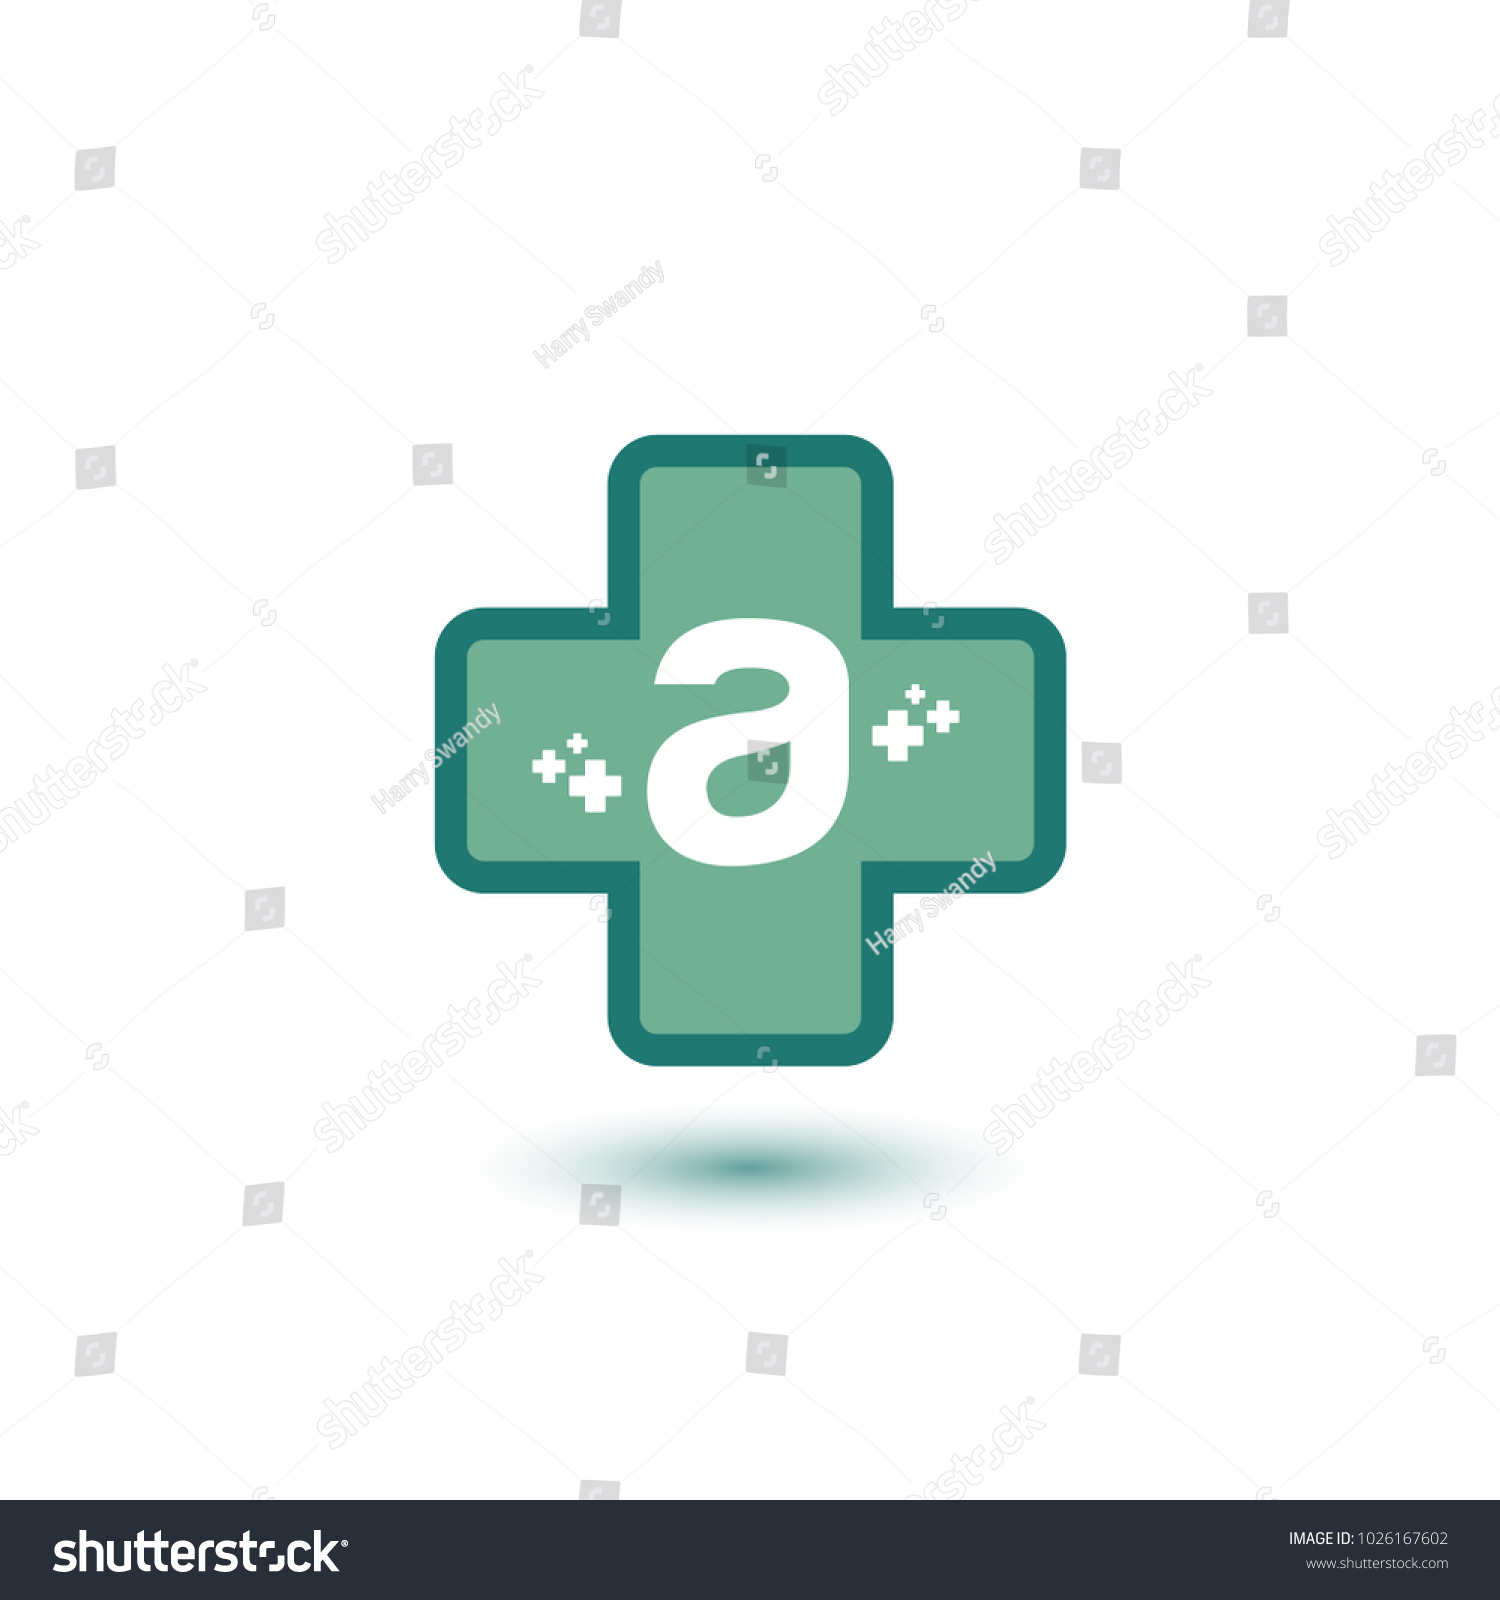 Cross Green Letter Negative Space Initial Stock Vector 1026167602 ...